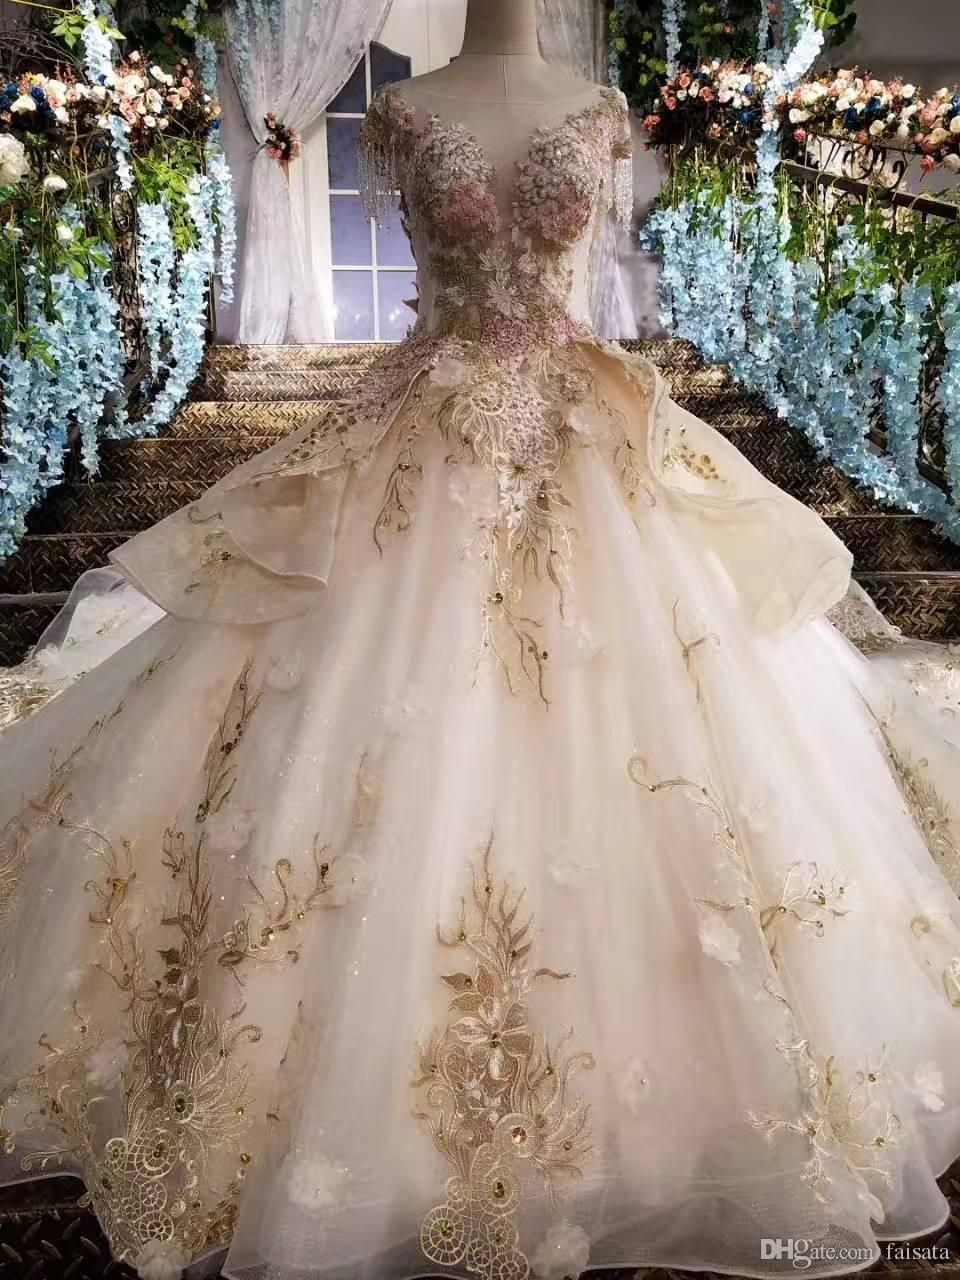 Pin by lucy nyu on Vestidos   Pinterest   Embroidery, Gowns and ...